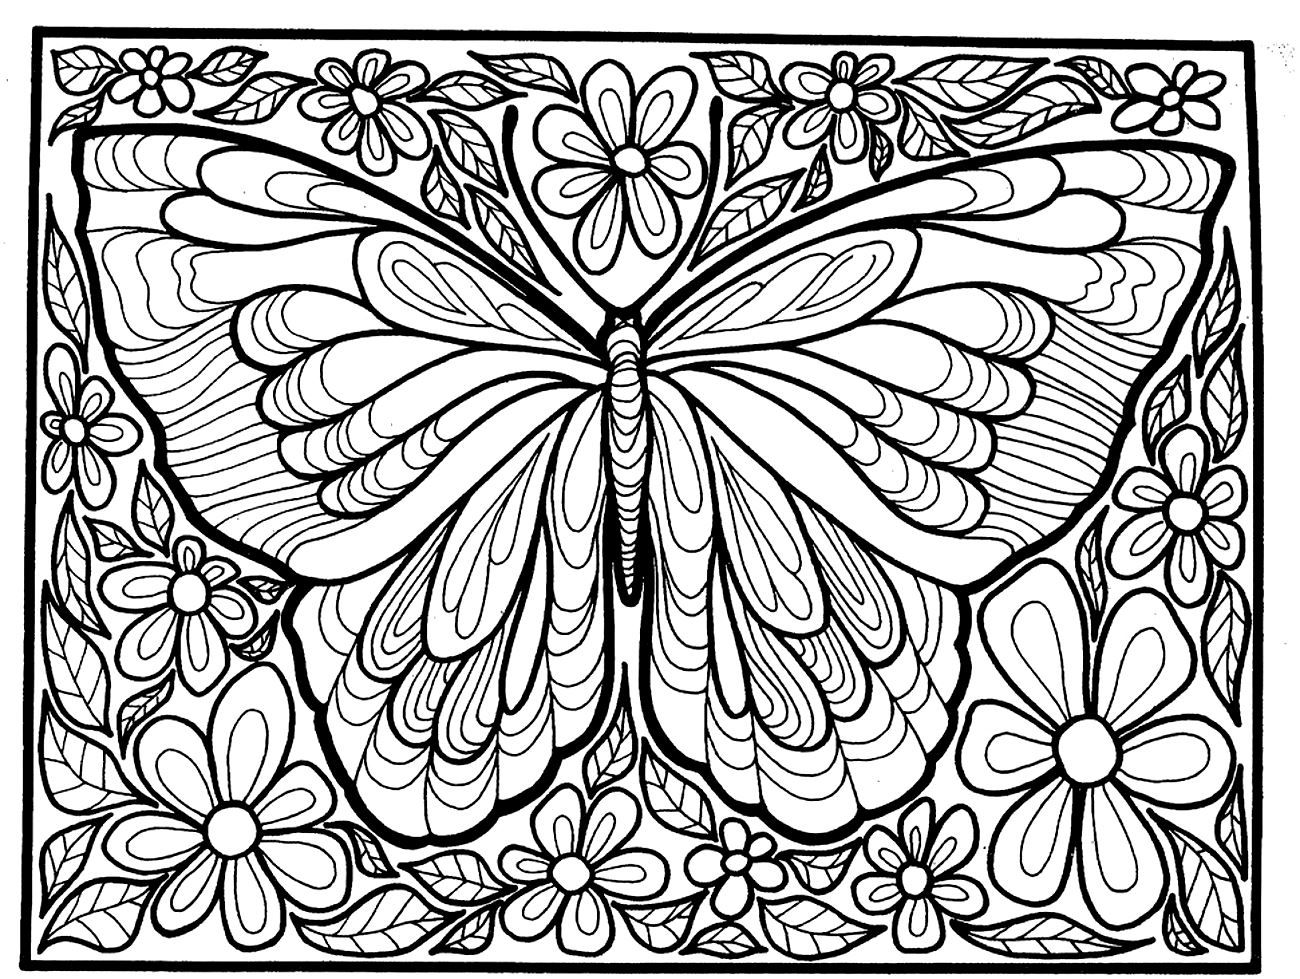 Http Colorings Co Butterfly Coloring Pages For Adults Butterfly Coloring Page Animal Coloring Pages Insect Coloring Pages [ 979 x 1300 Pixel ]